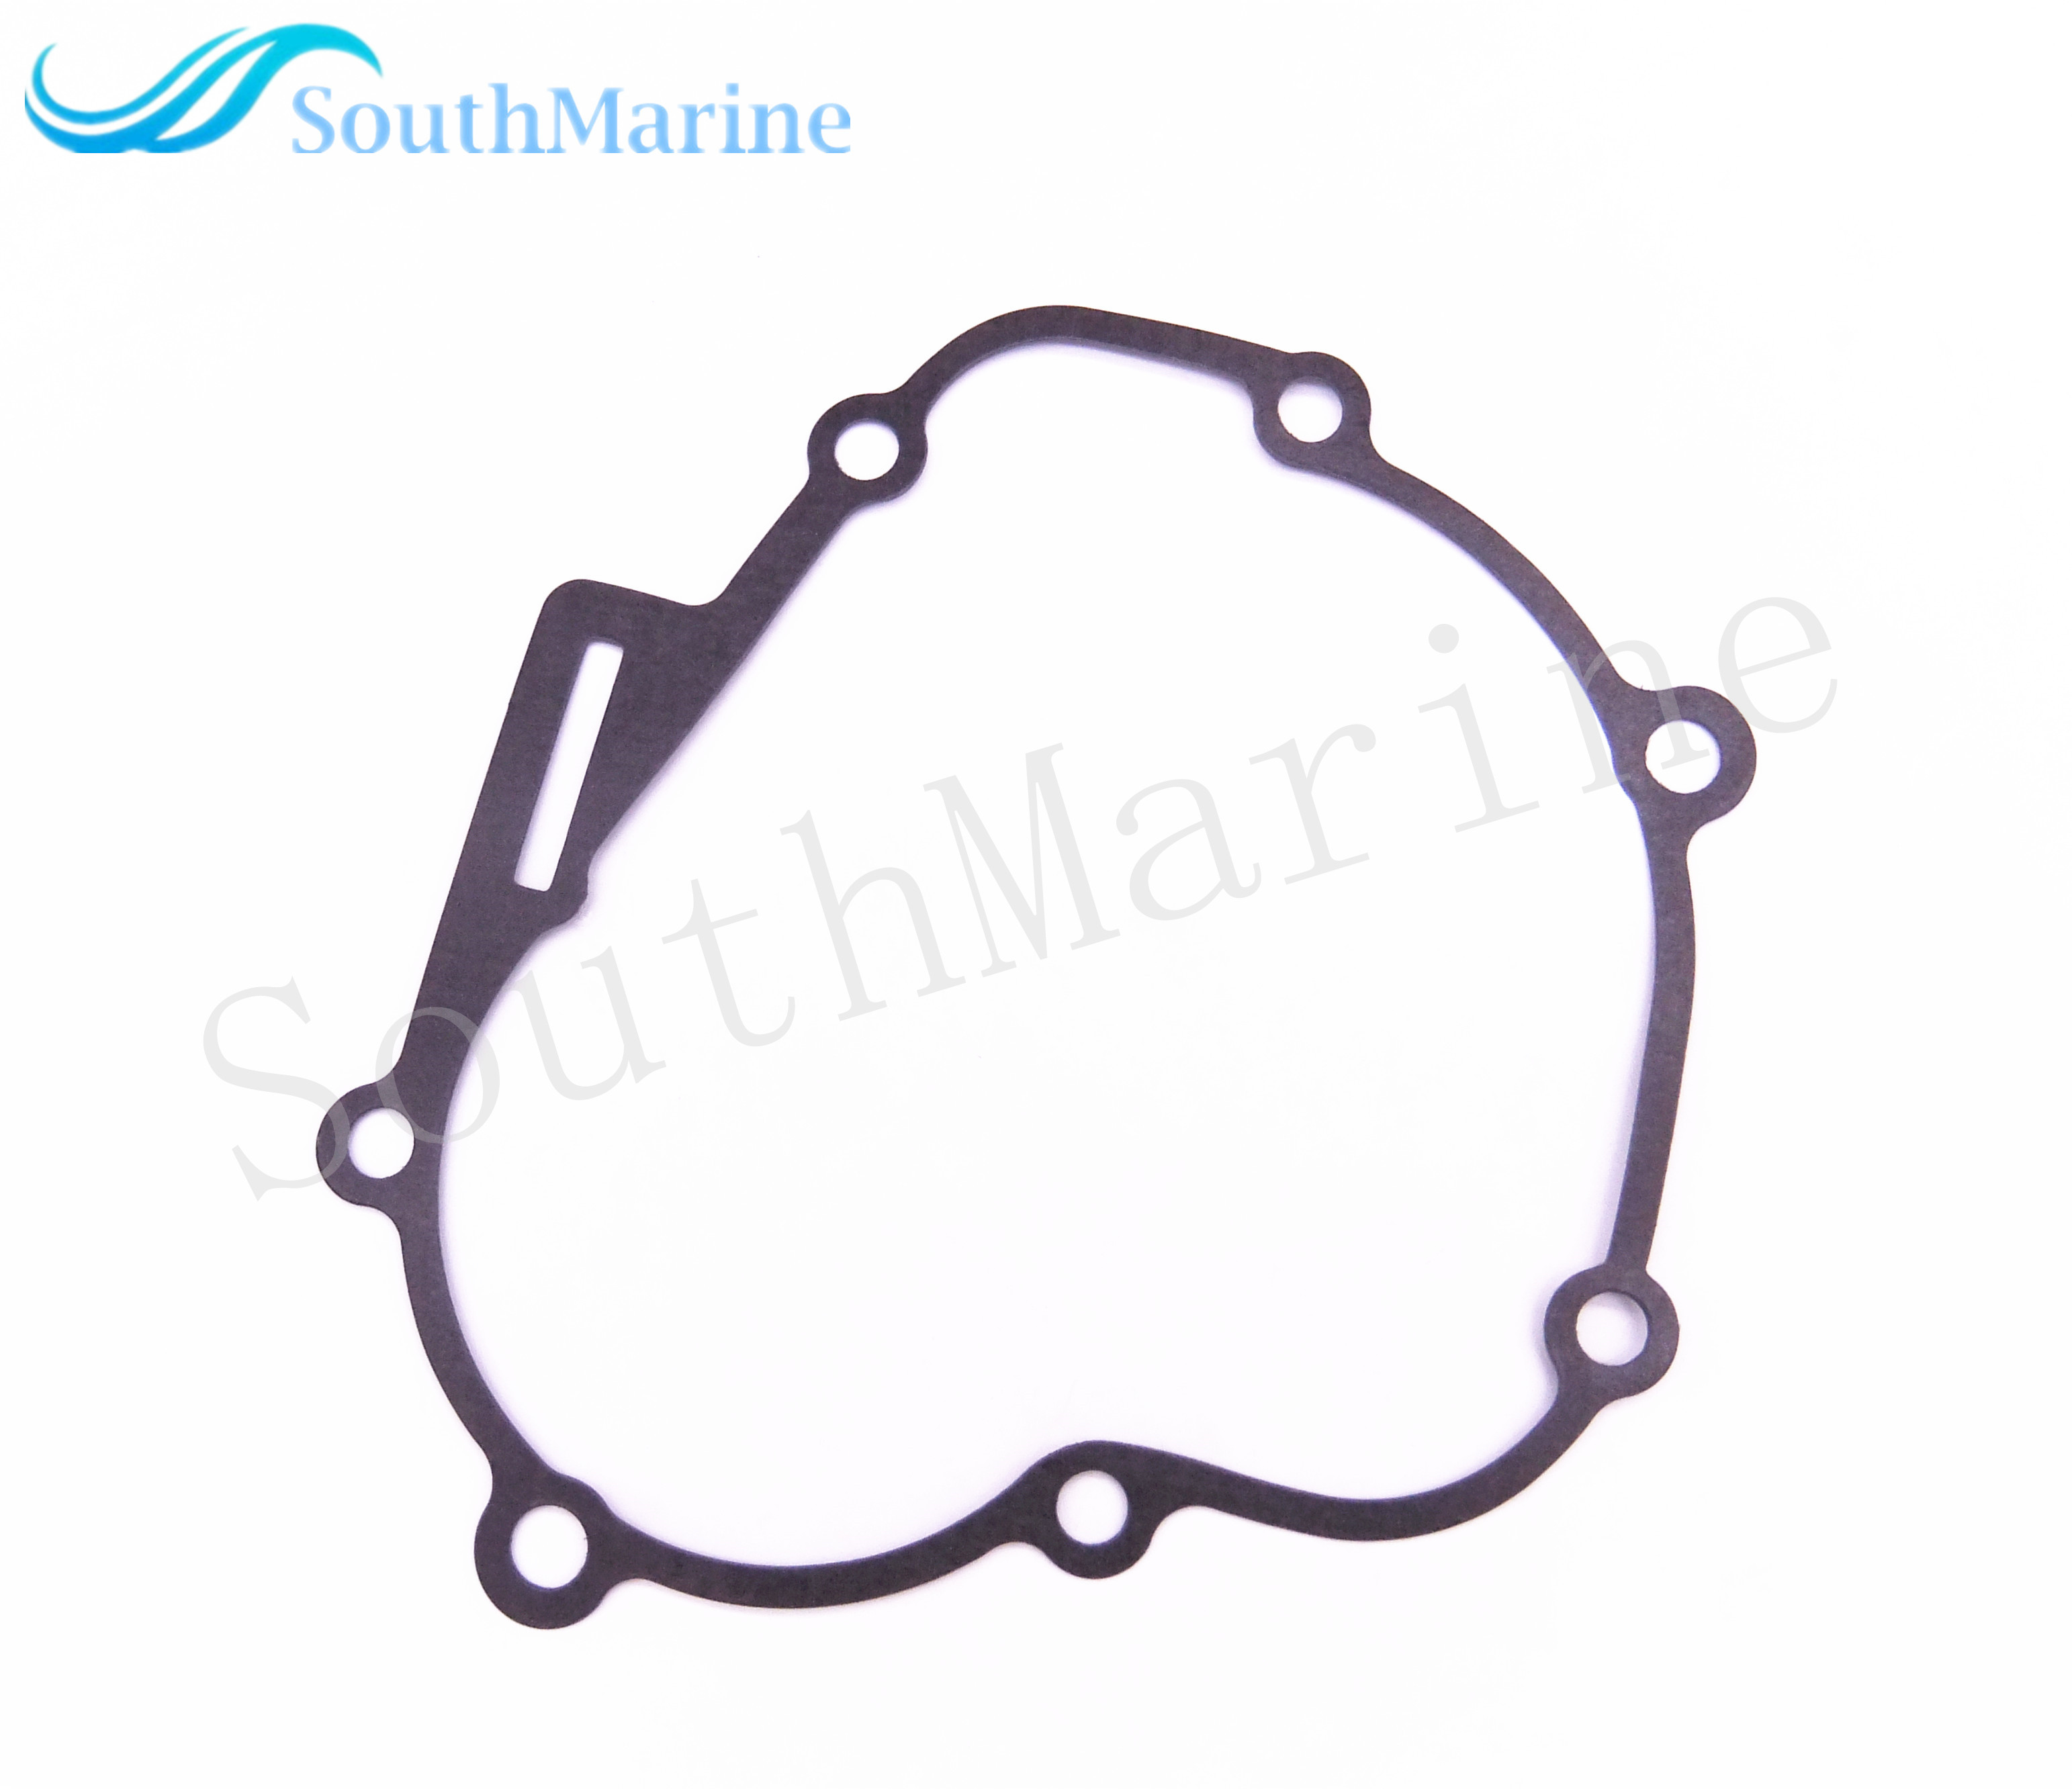 68D-11351-A0 Cylinder Gasket for Yamaha 4-Stroke F4 Boat Outboard Motors Free Shipping